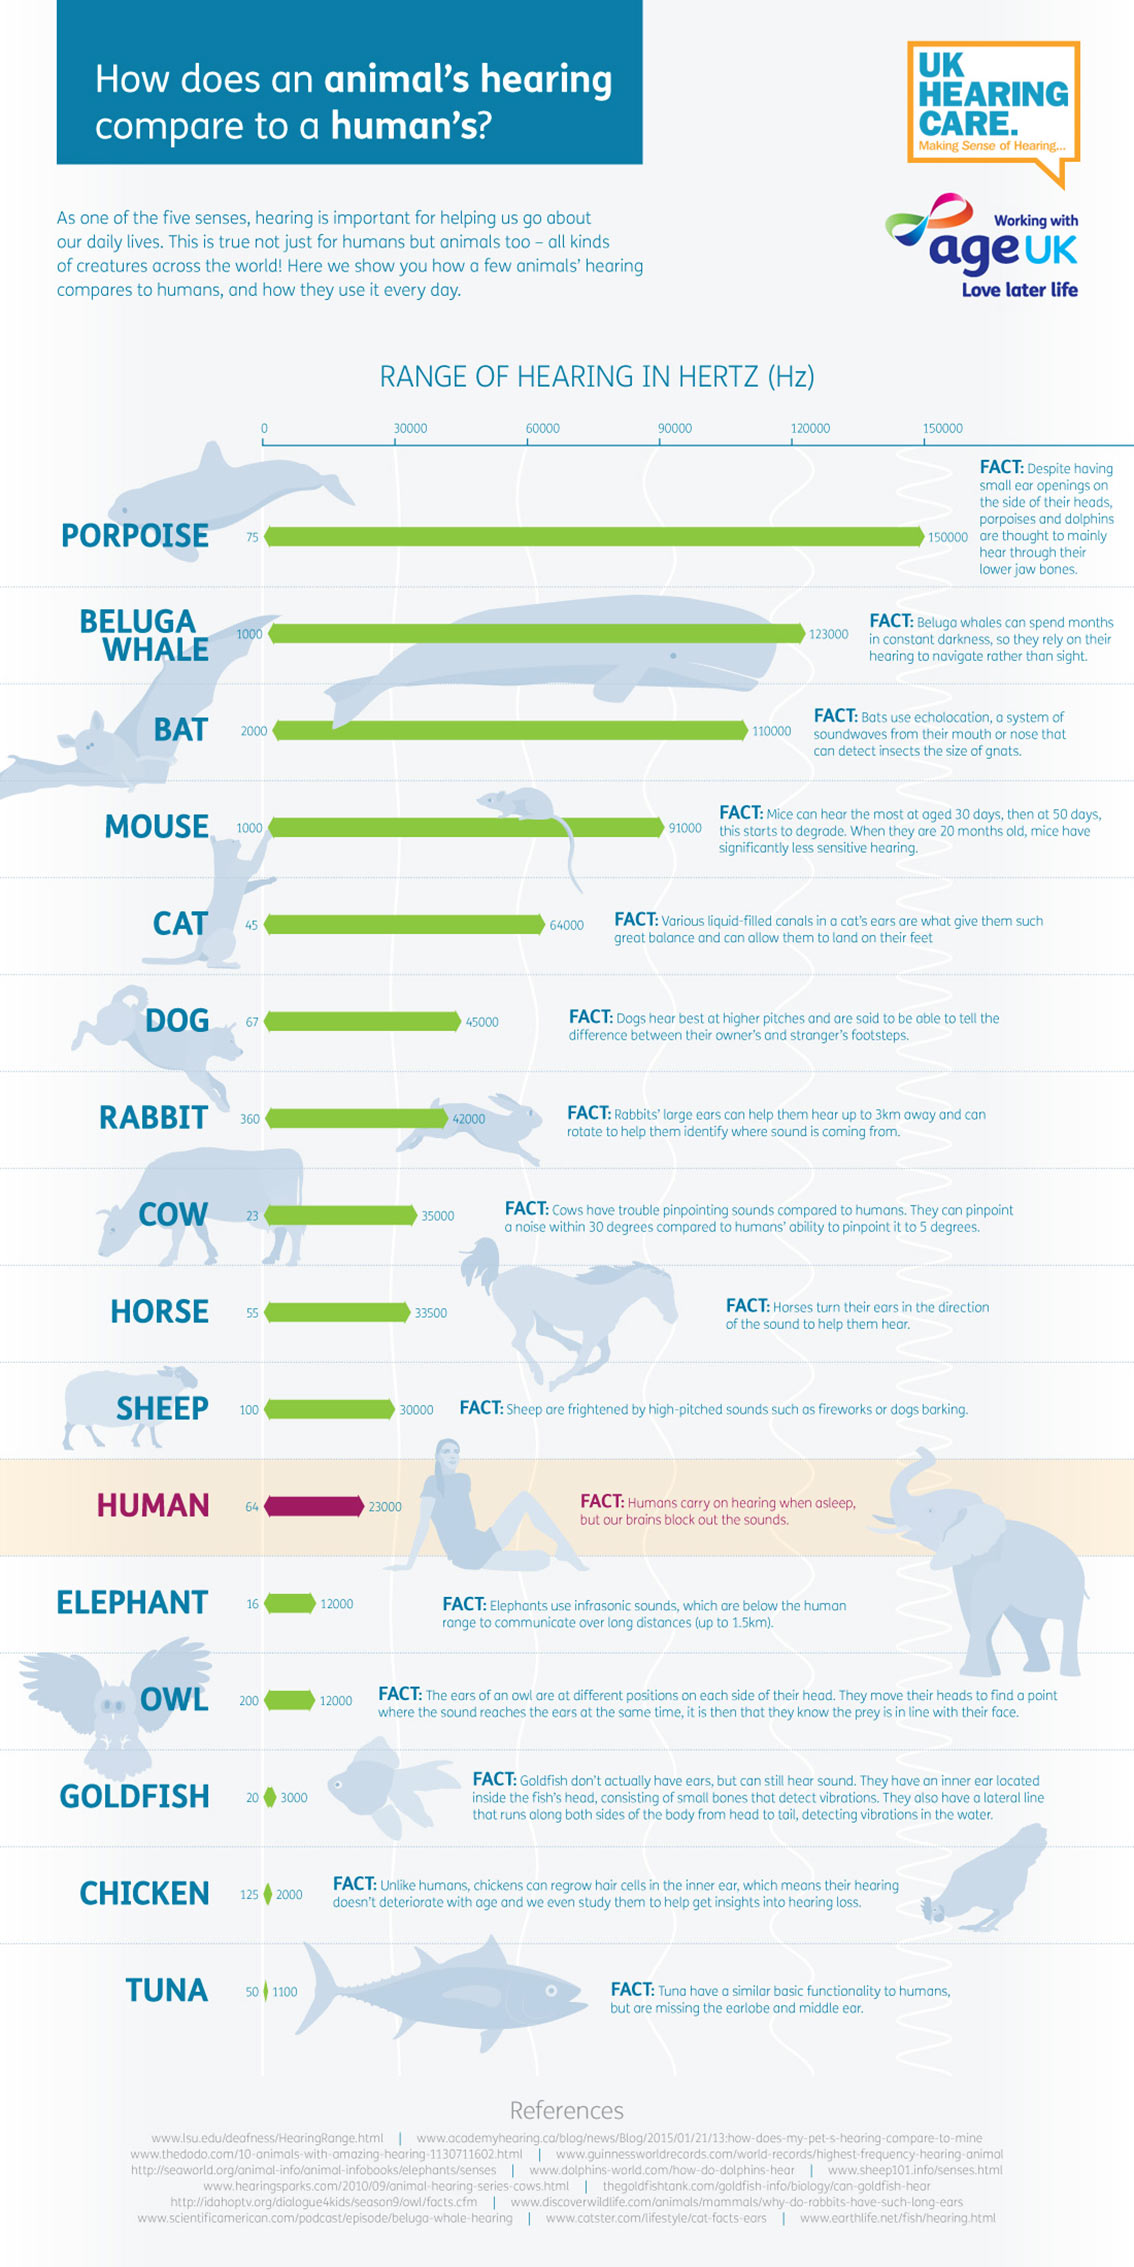 Animal Hearing Ranges Compared to Human Infographic